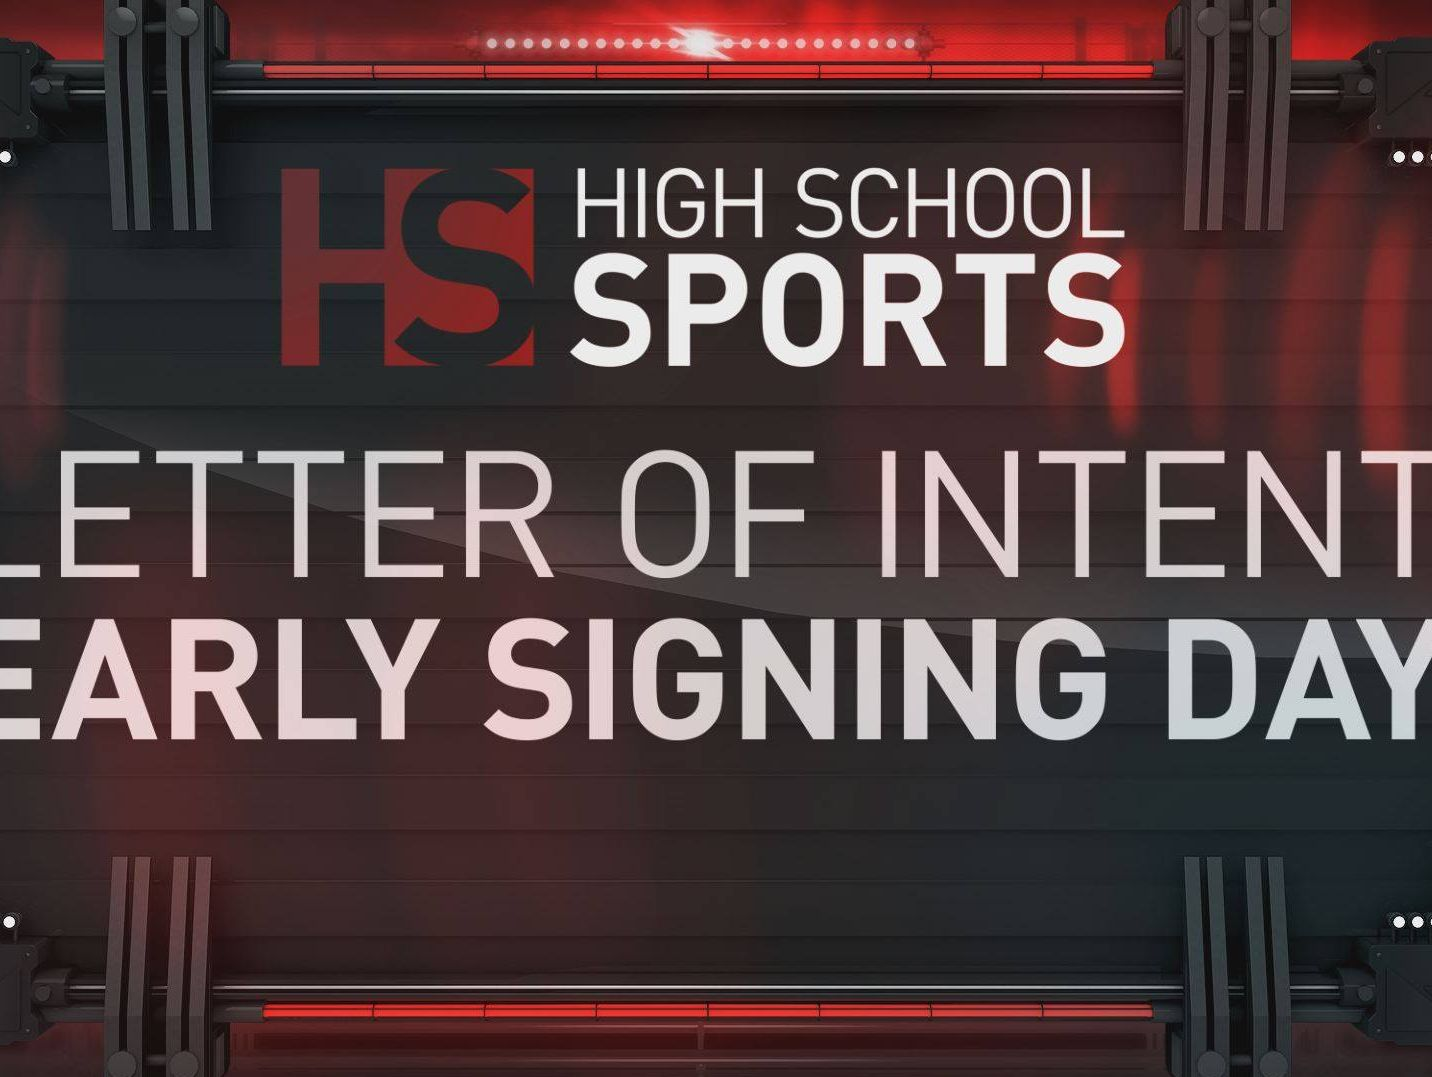 Early Signing Day